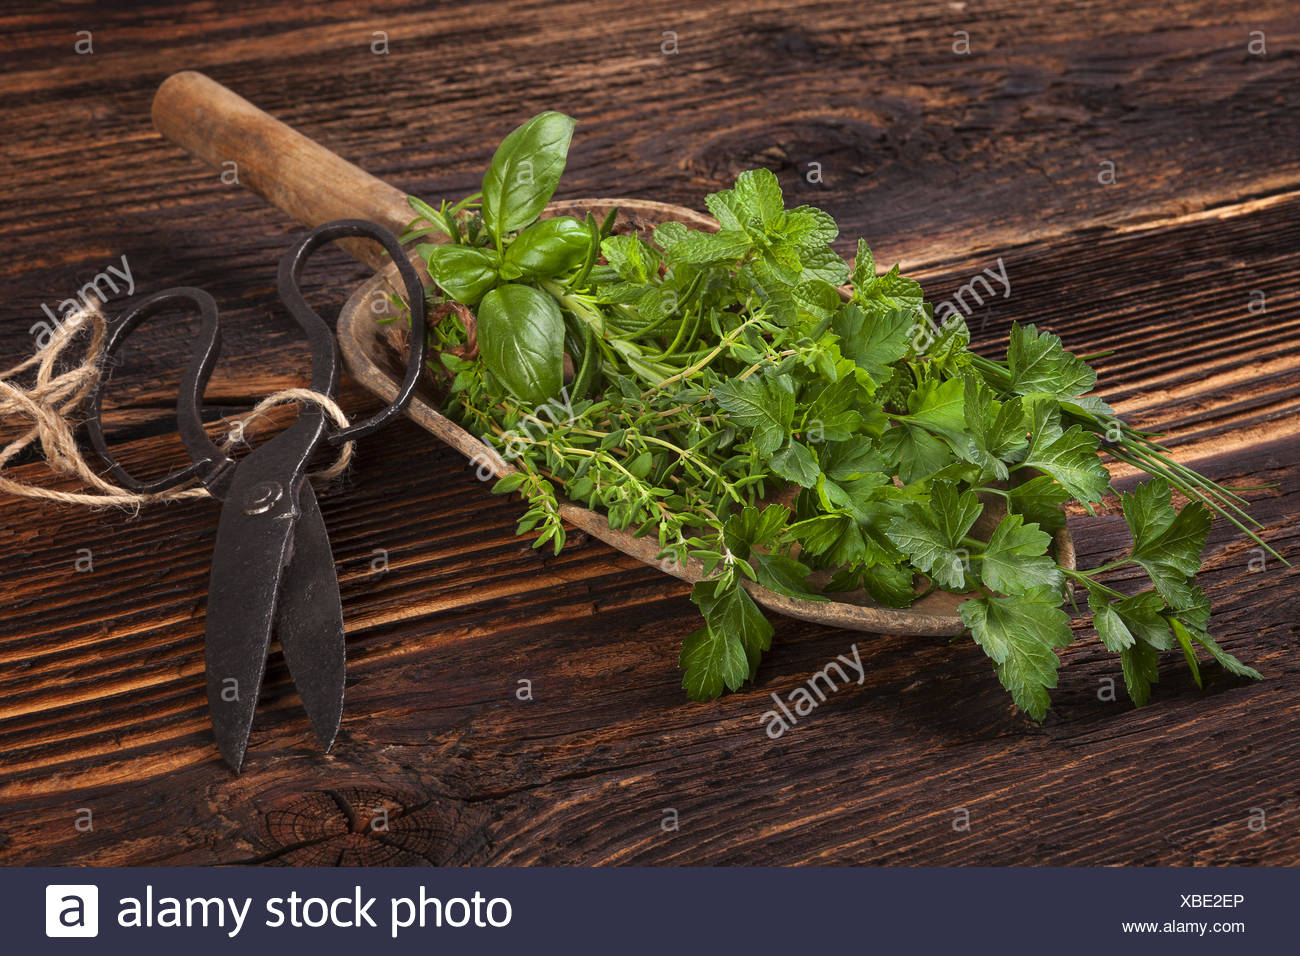 Various aromatic culinary herbs, rustic style. - Stock Image